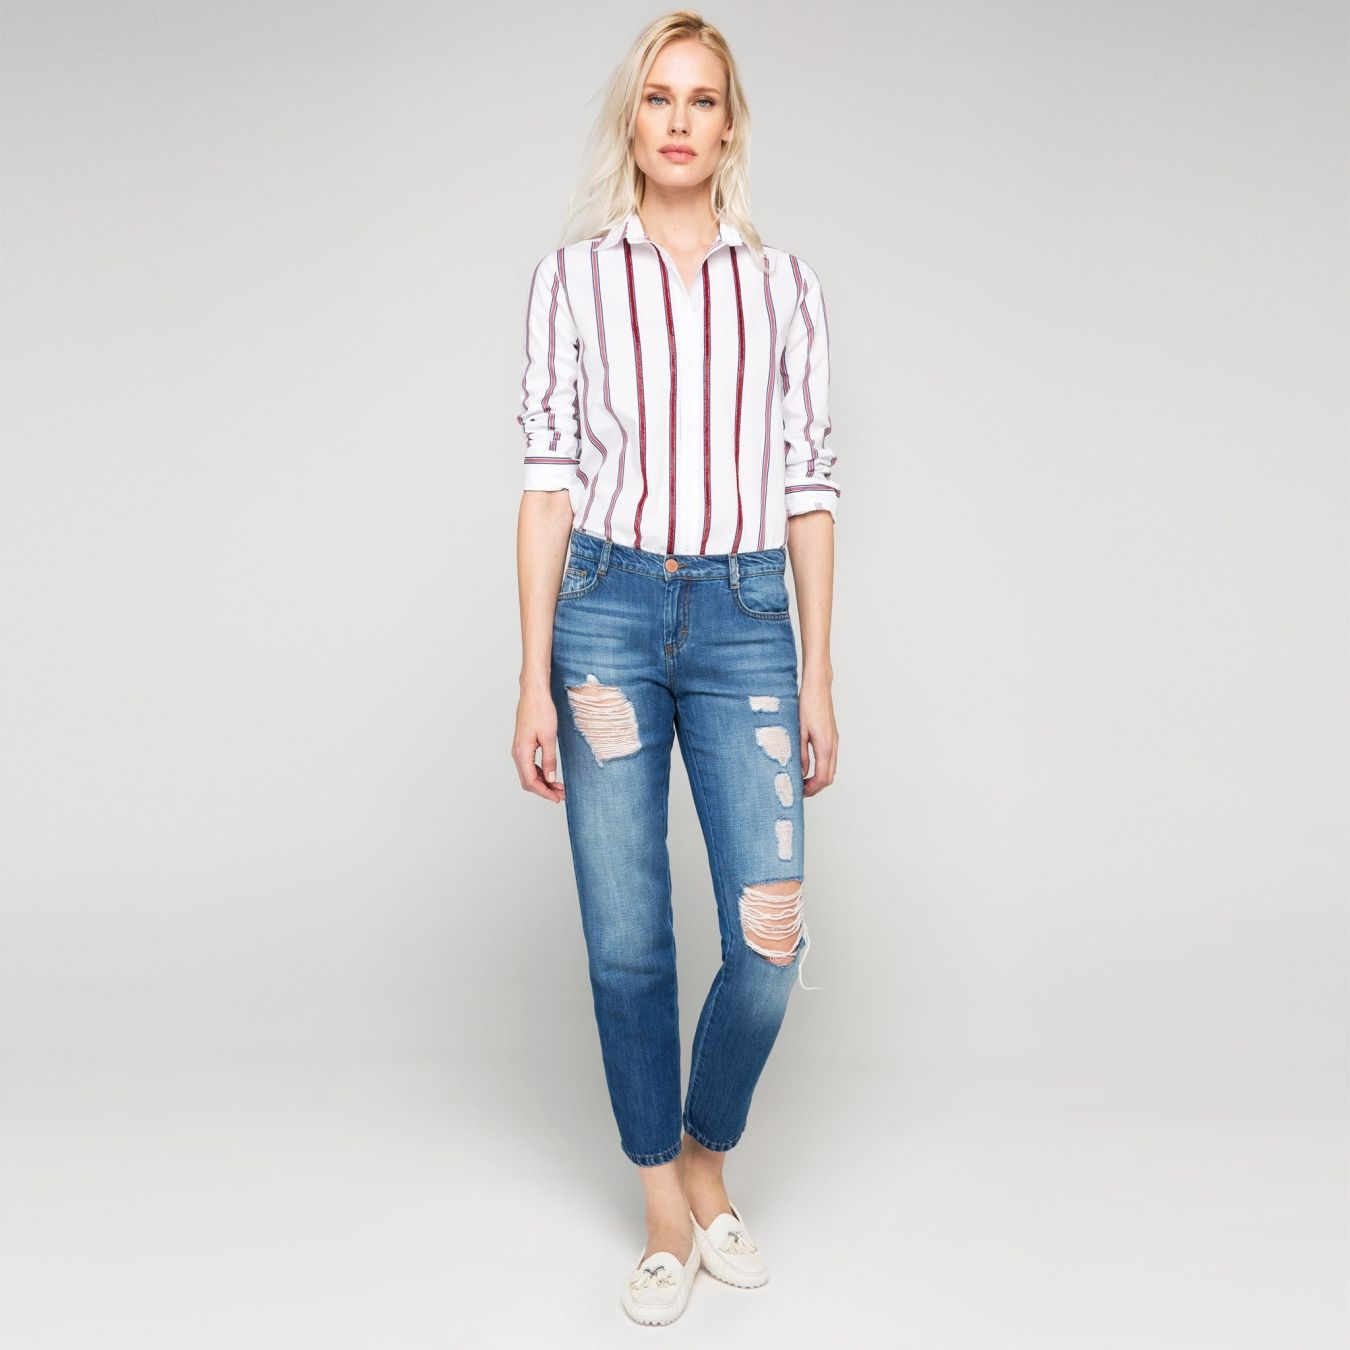 Koyu Mavi Yirtik Detayli Relax Jean Pantolon Mom Jeans Fashion Denim